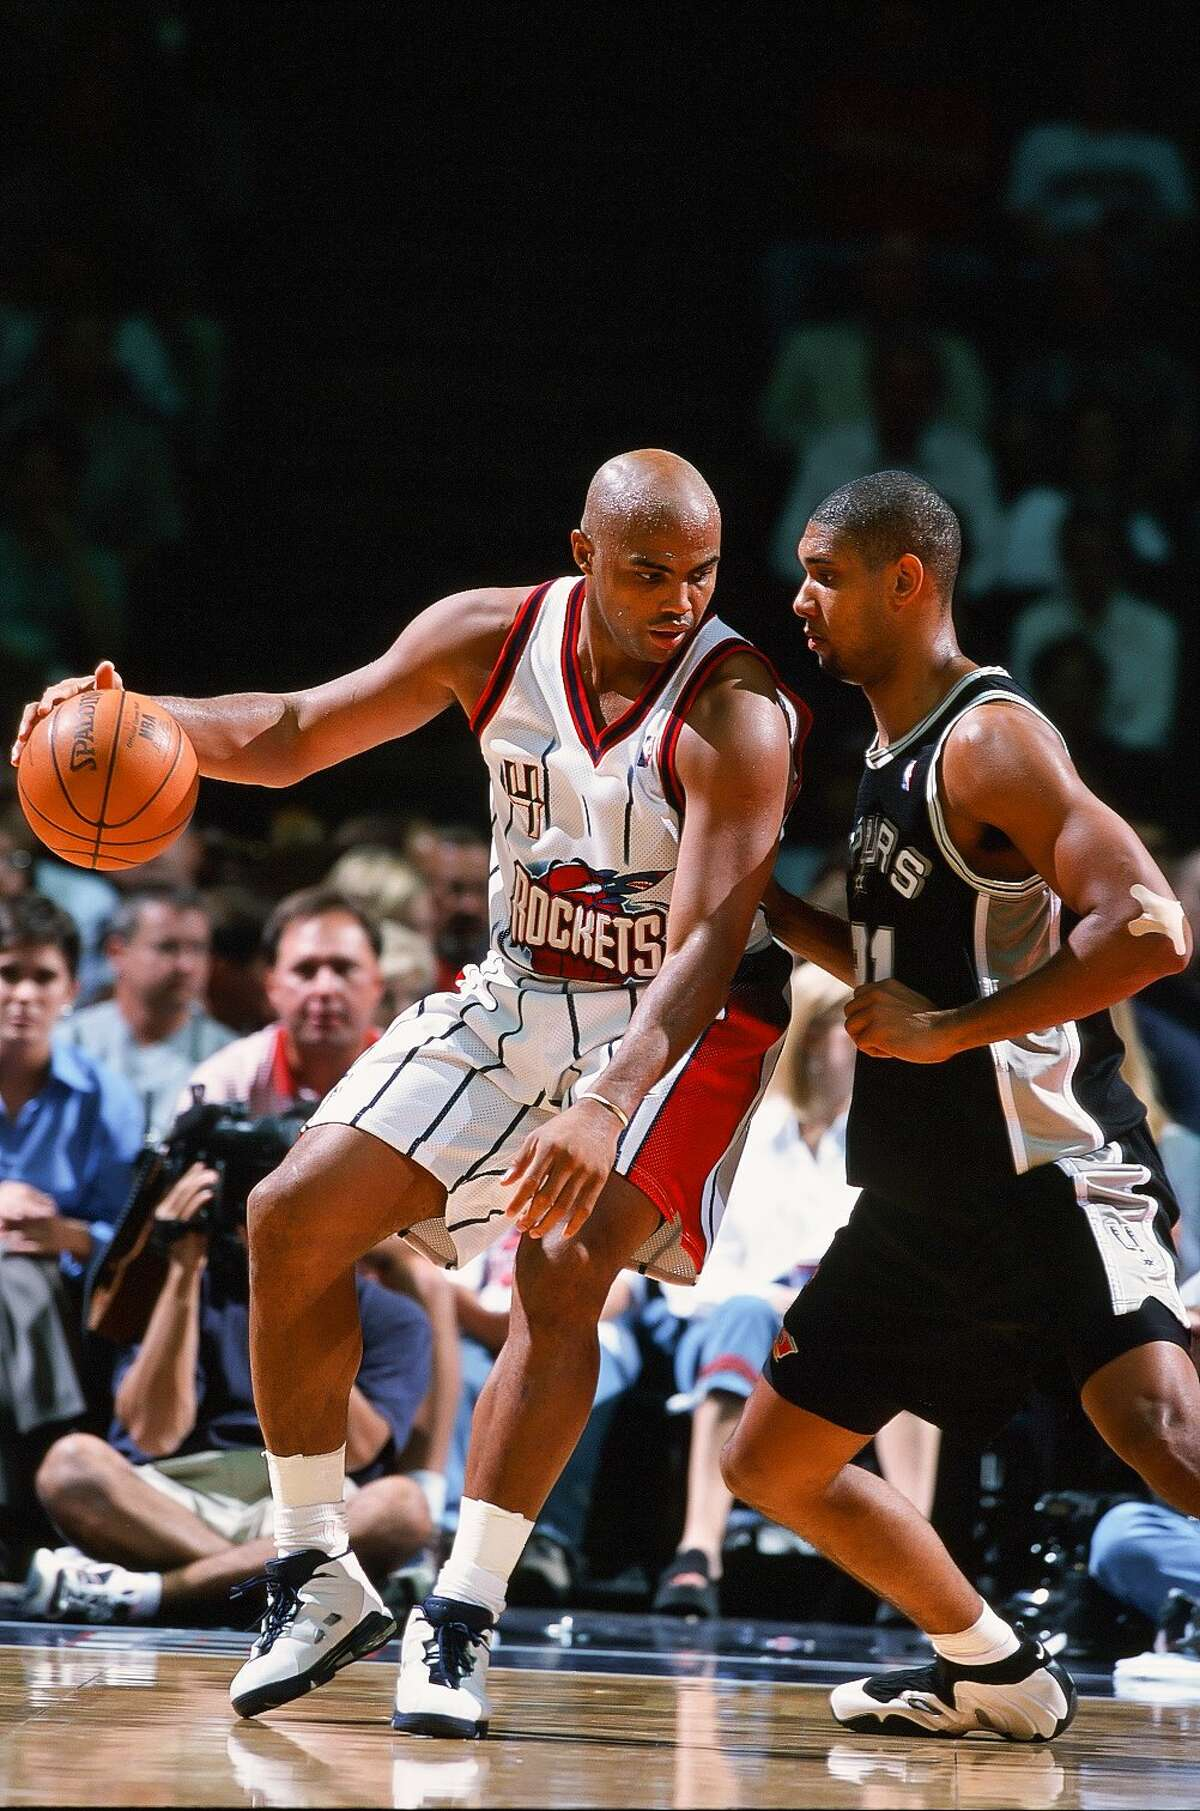 March 2, 1999: 23 points, 14 rebounds In the Spurs' first championship season, Duncan more than held his own against the Rockets' Charles Barkley and Hakeem Olajuwon. In this 99-82 Spurs win, Duncan had 23 points, 14 rebounds and five blocks. Barkley and Olajuwon had 16 and 12 points, respectively.